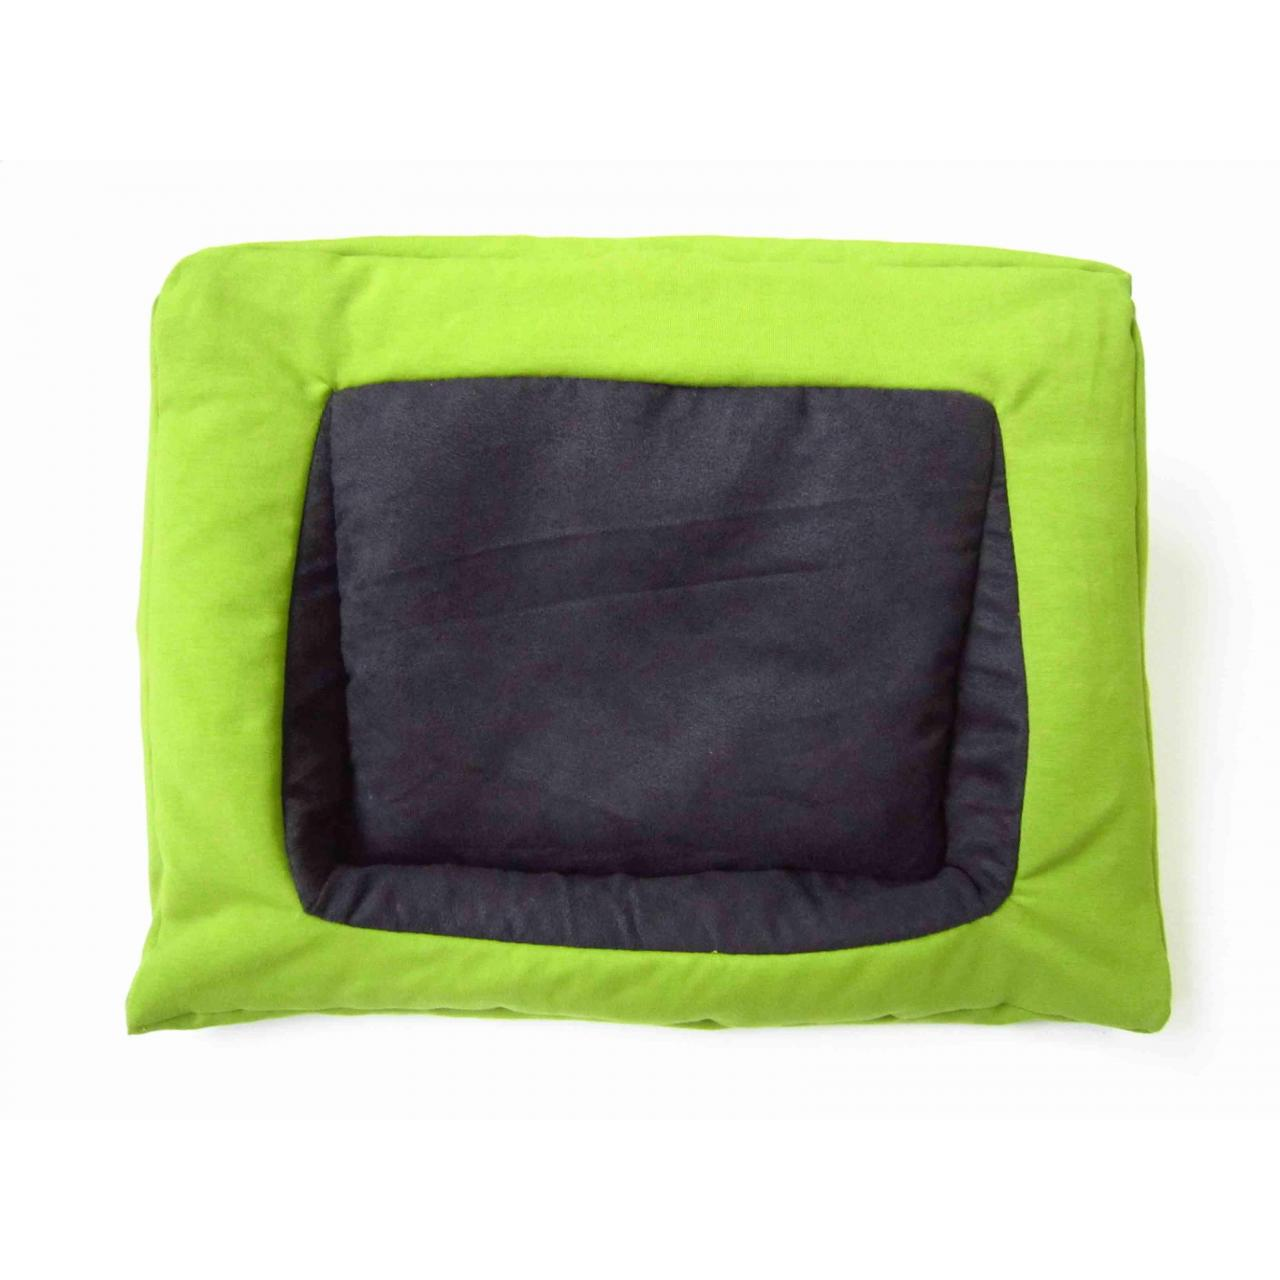 China Mirico beads ipad cushion on sale